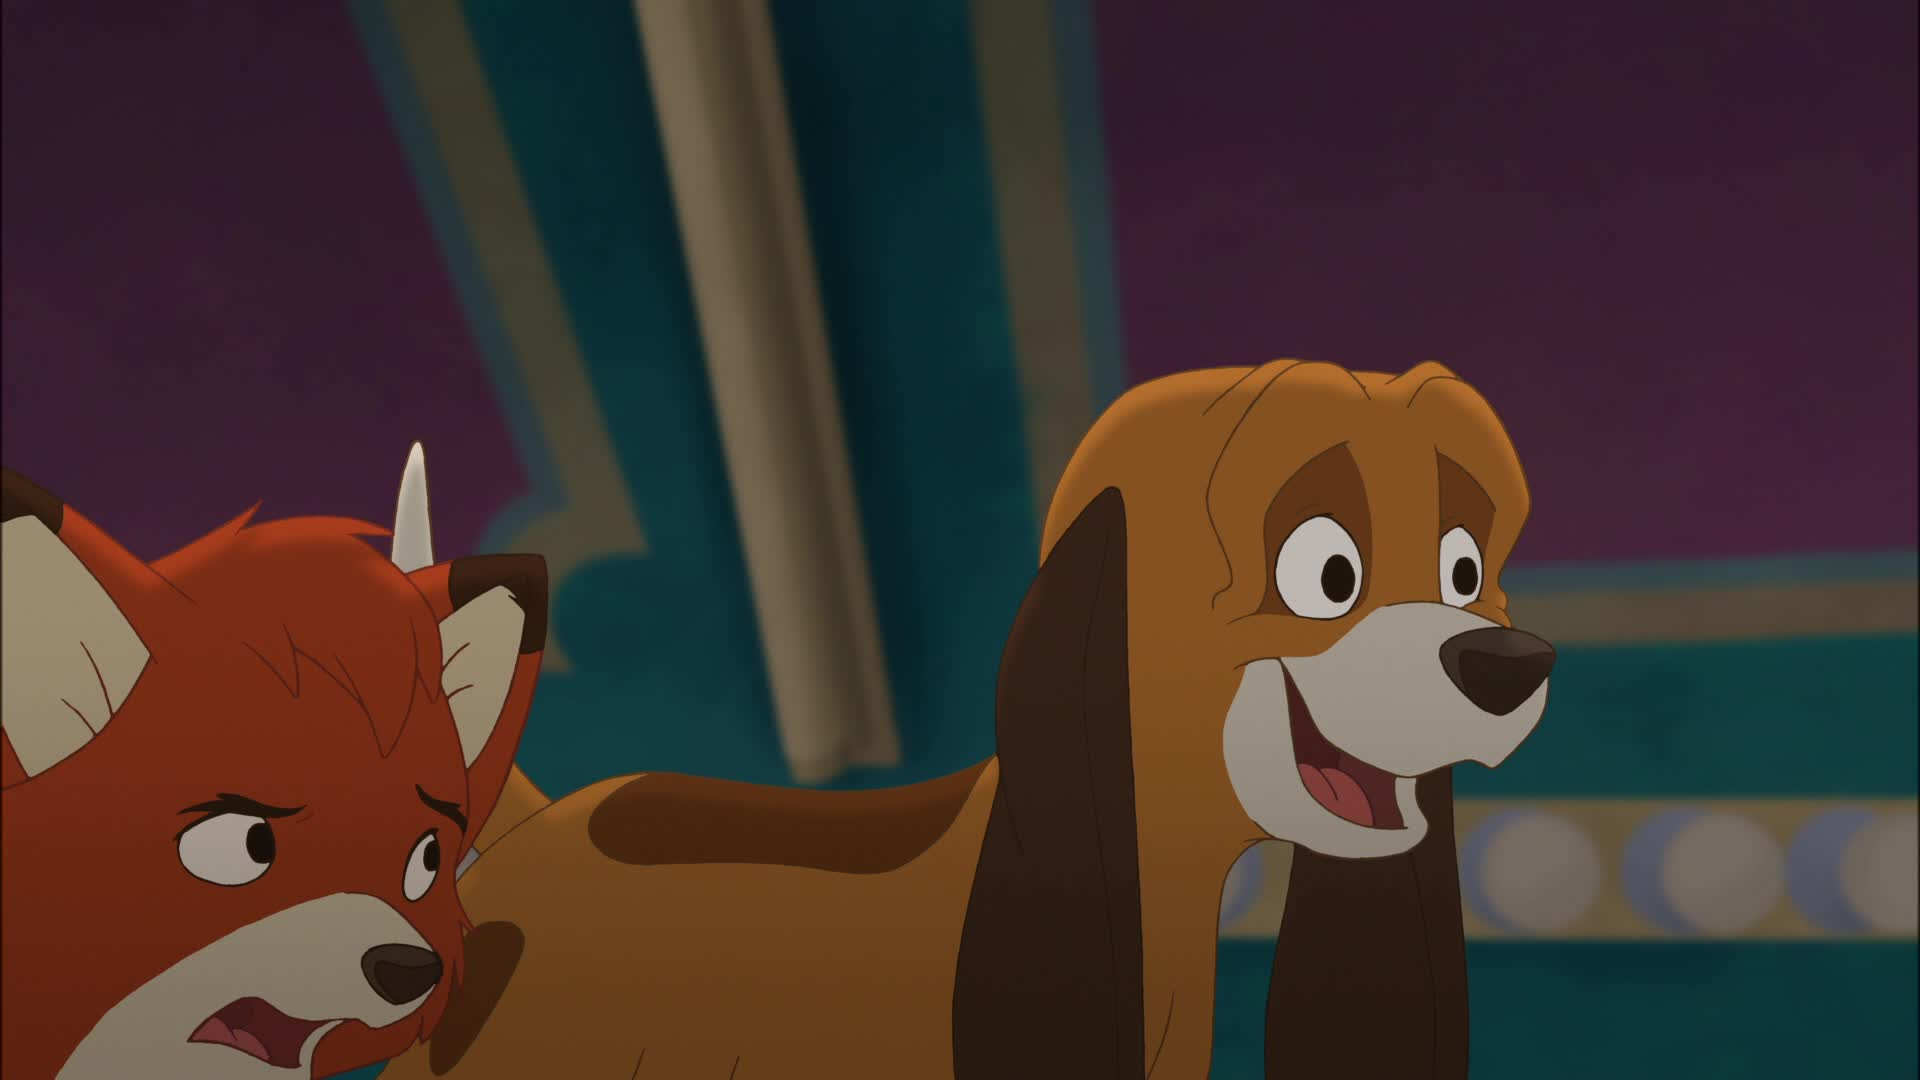 Squeaks C The Fox And The Hound